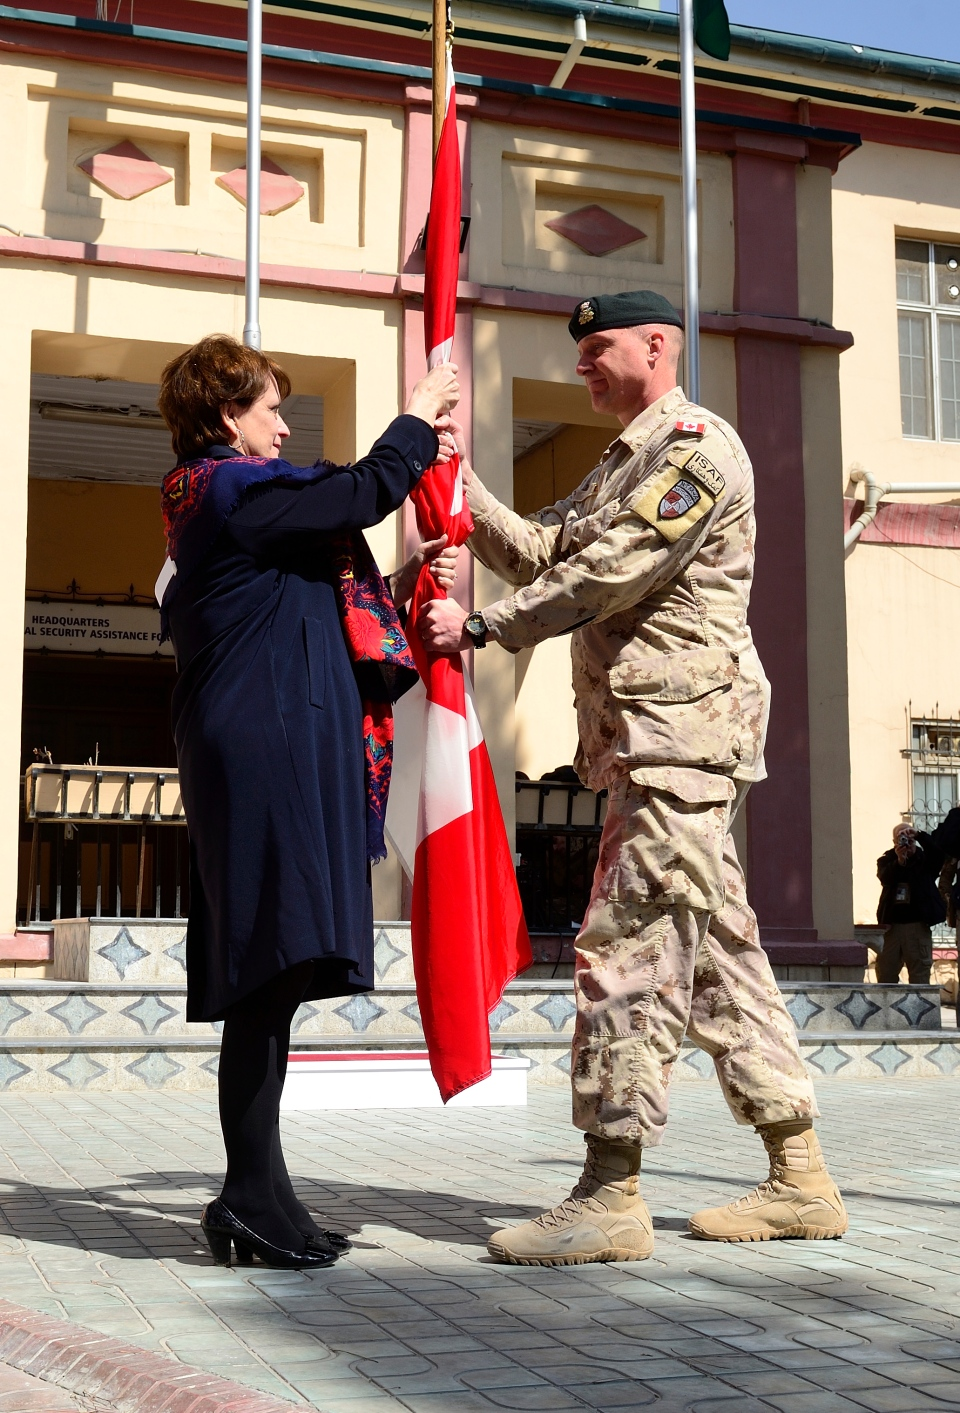 Maj.-Gen. Dean Milner, last Commander of the Canadian Contribution to the Training Mission in Afghanistan, hands over the Canadian flag to Deborah Lyons, Canada's ambassador to the Islamic Republic of Afghanistan, as a symbol of the continued Canadian support to Afghanistan during the flag lowering ceremony, Wednesday, March 12, 2014. (Master Cpl. Patrick Blanchard / Canadian Forces Combat Camera)